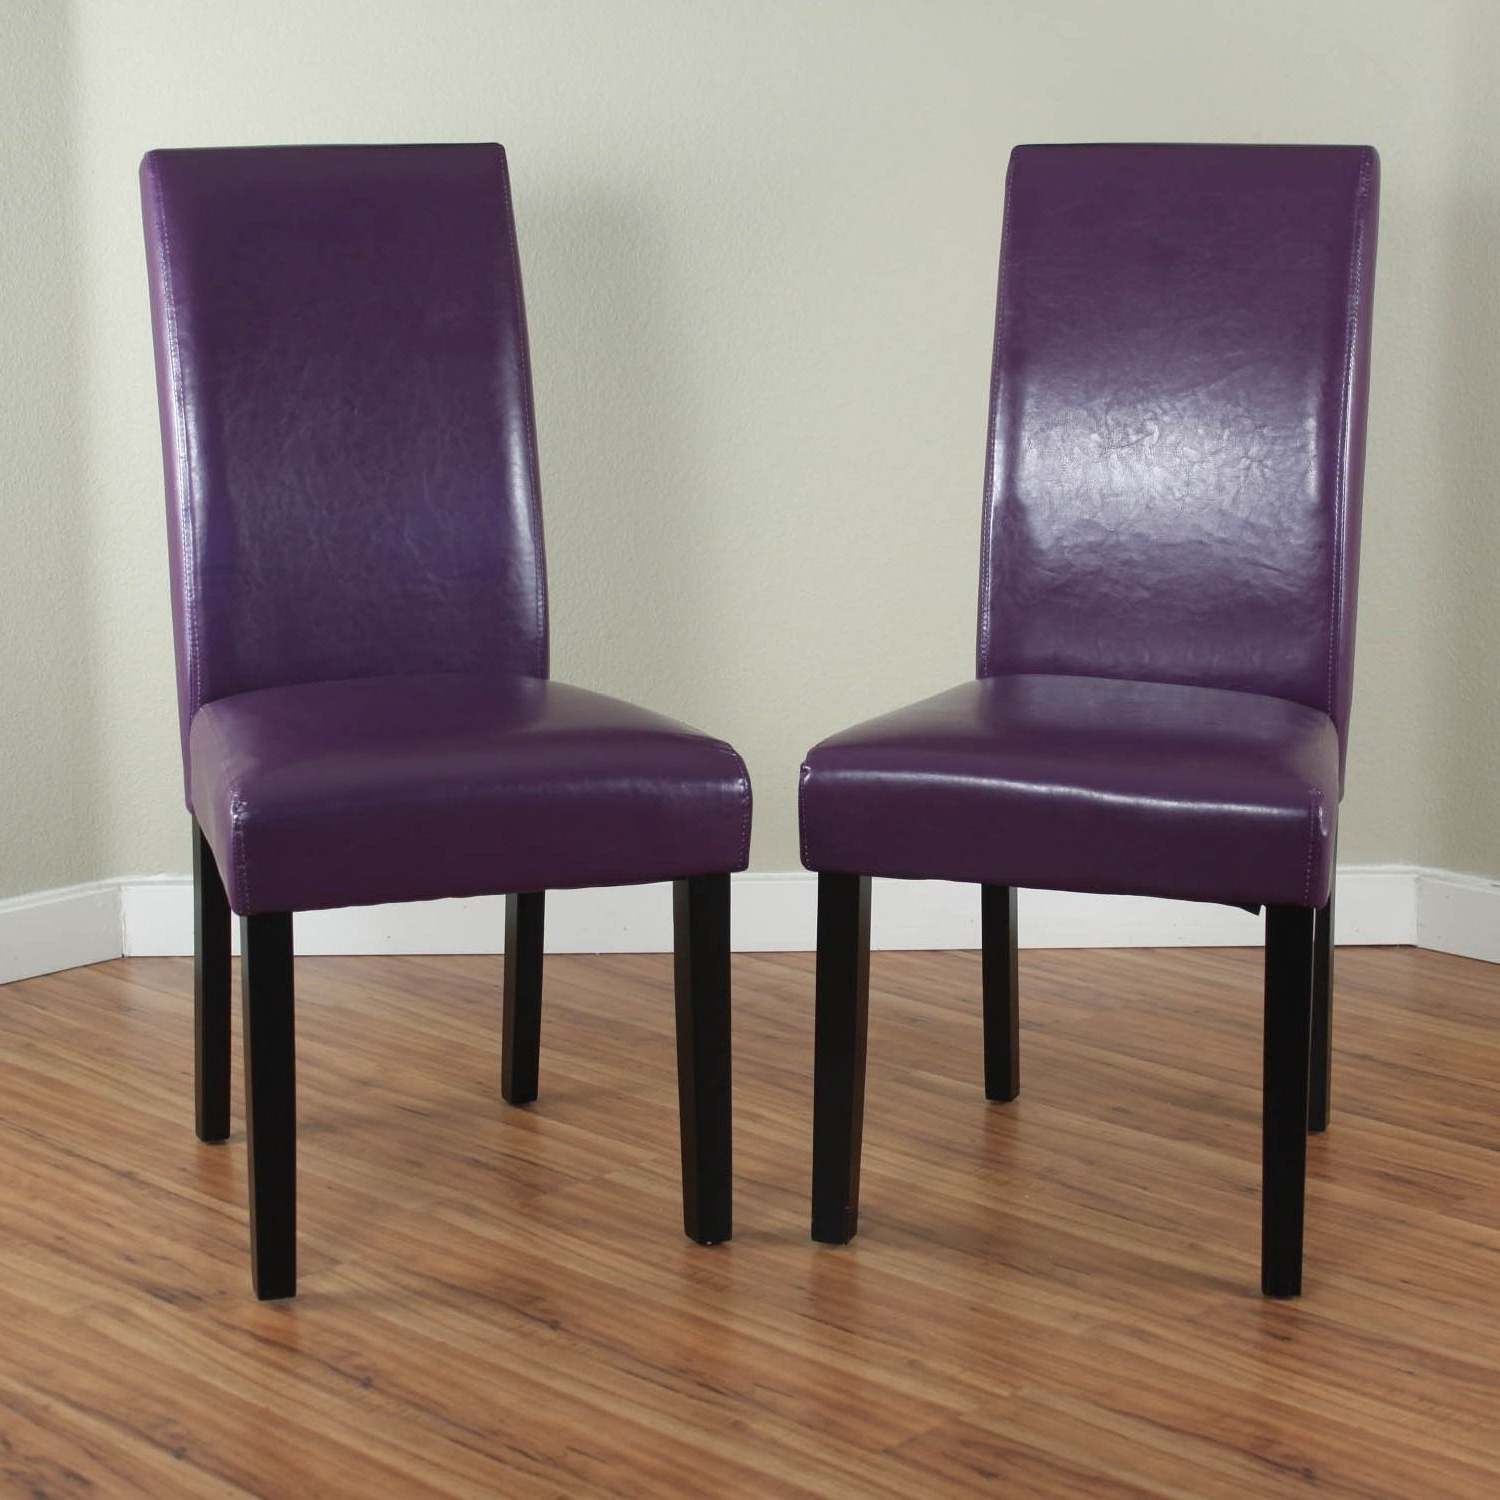 Most Up To Date Go Beyond Ordinary Design With A Pair Of Villa Purple Faux Leather With Purple Faux Leather Dining Chairs (View 2 of 25)